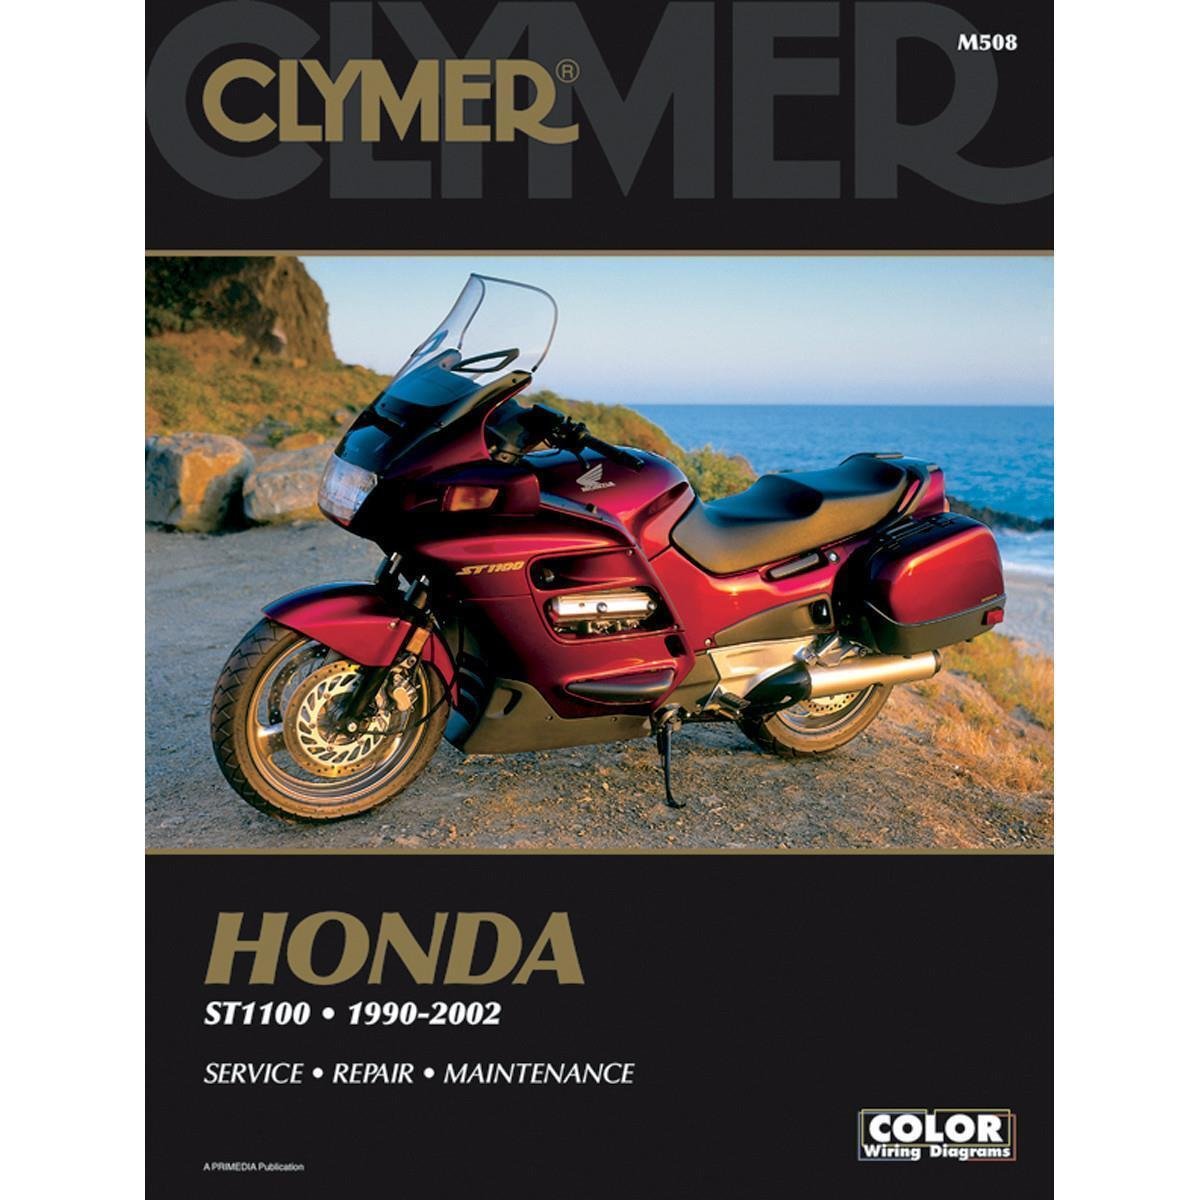 St1100 Engine Diagram Wiring Of Honda Motorcycle Parts 1996 Gl1500i A Guard Libraryst1100